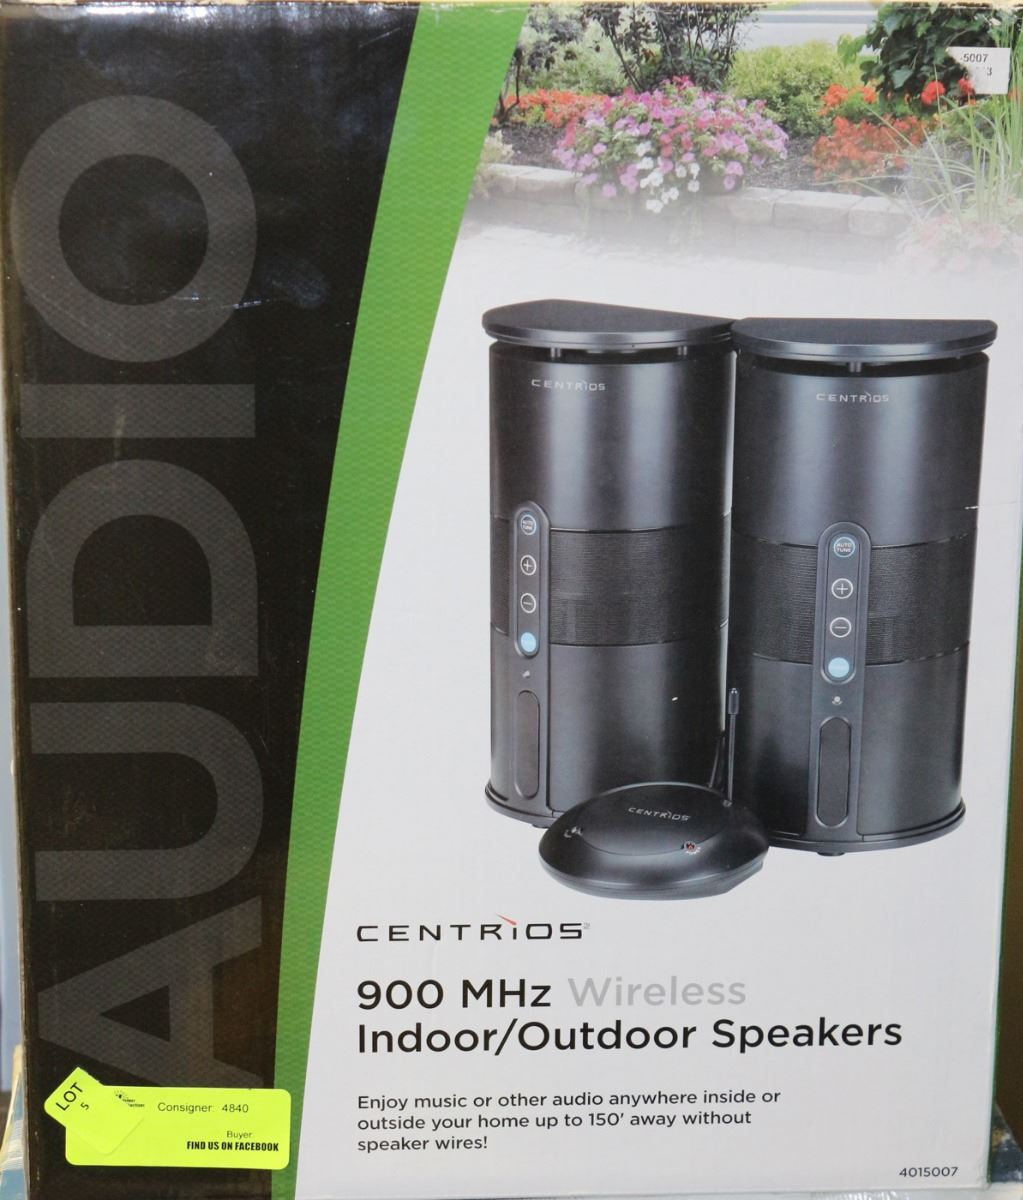 CENTRIOS 900MHZ INDOOR OUTDOOR WIRELESS SPEAKERS Loading Zoom